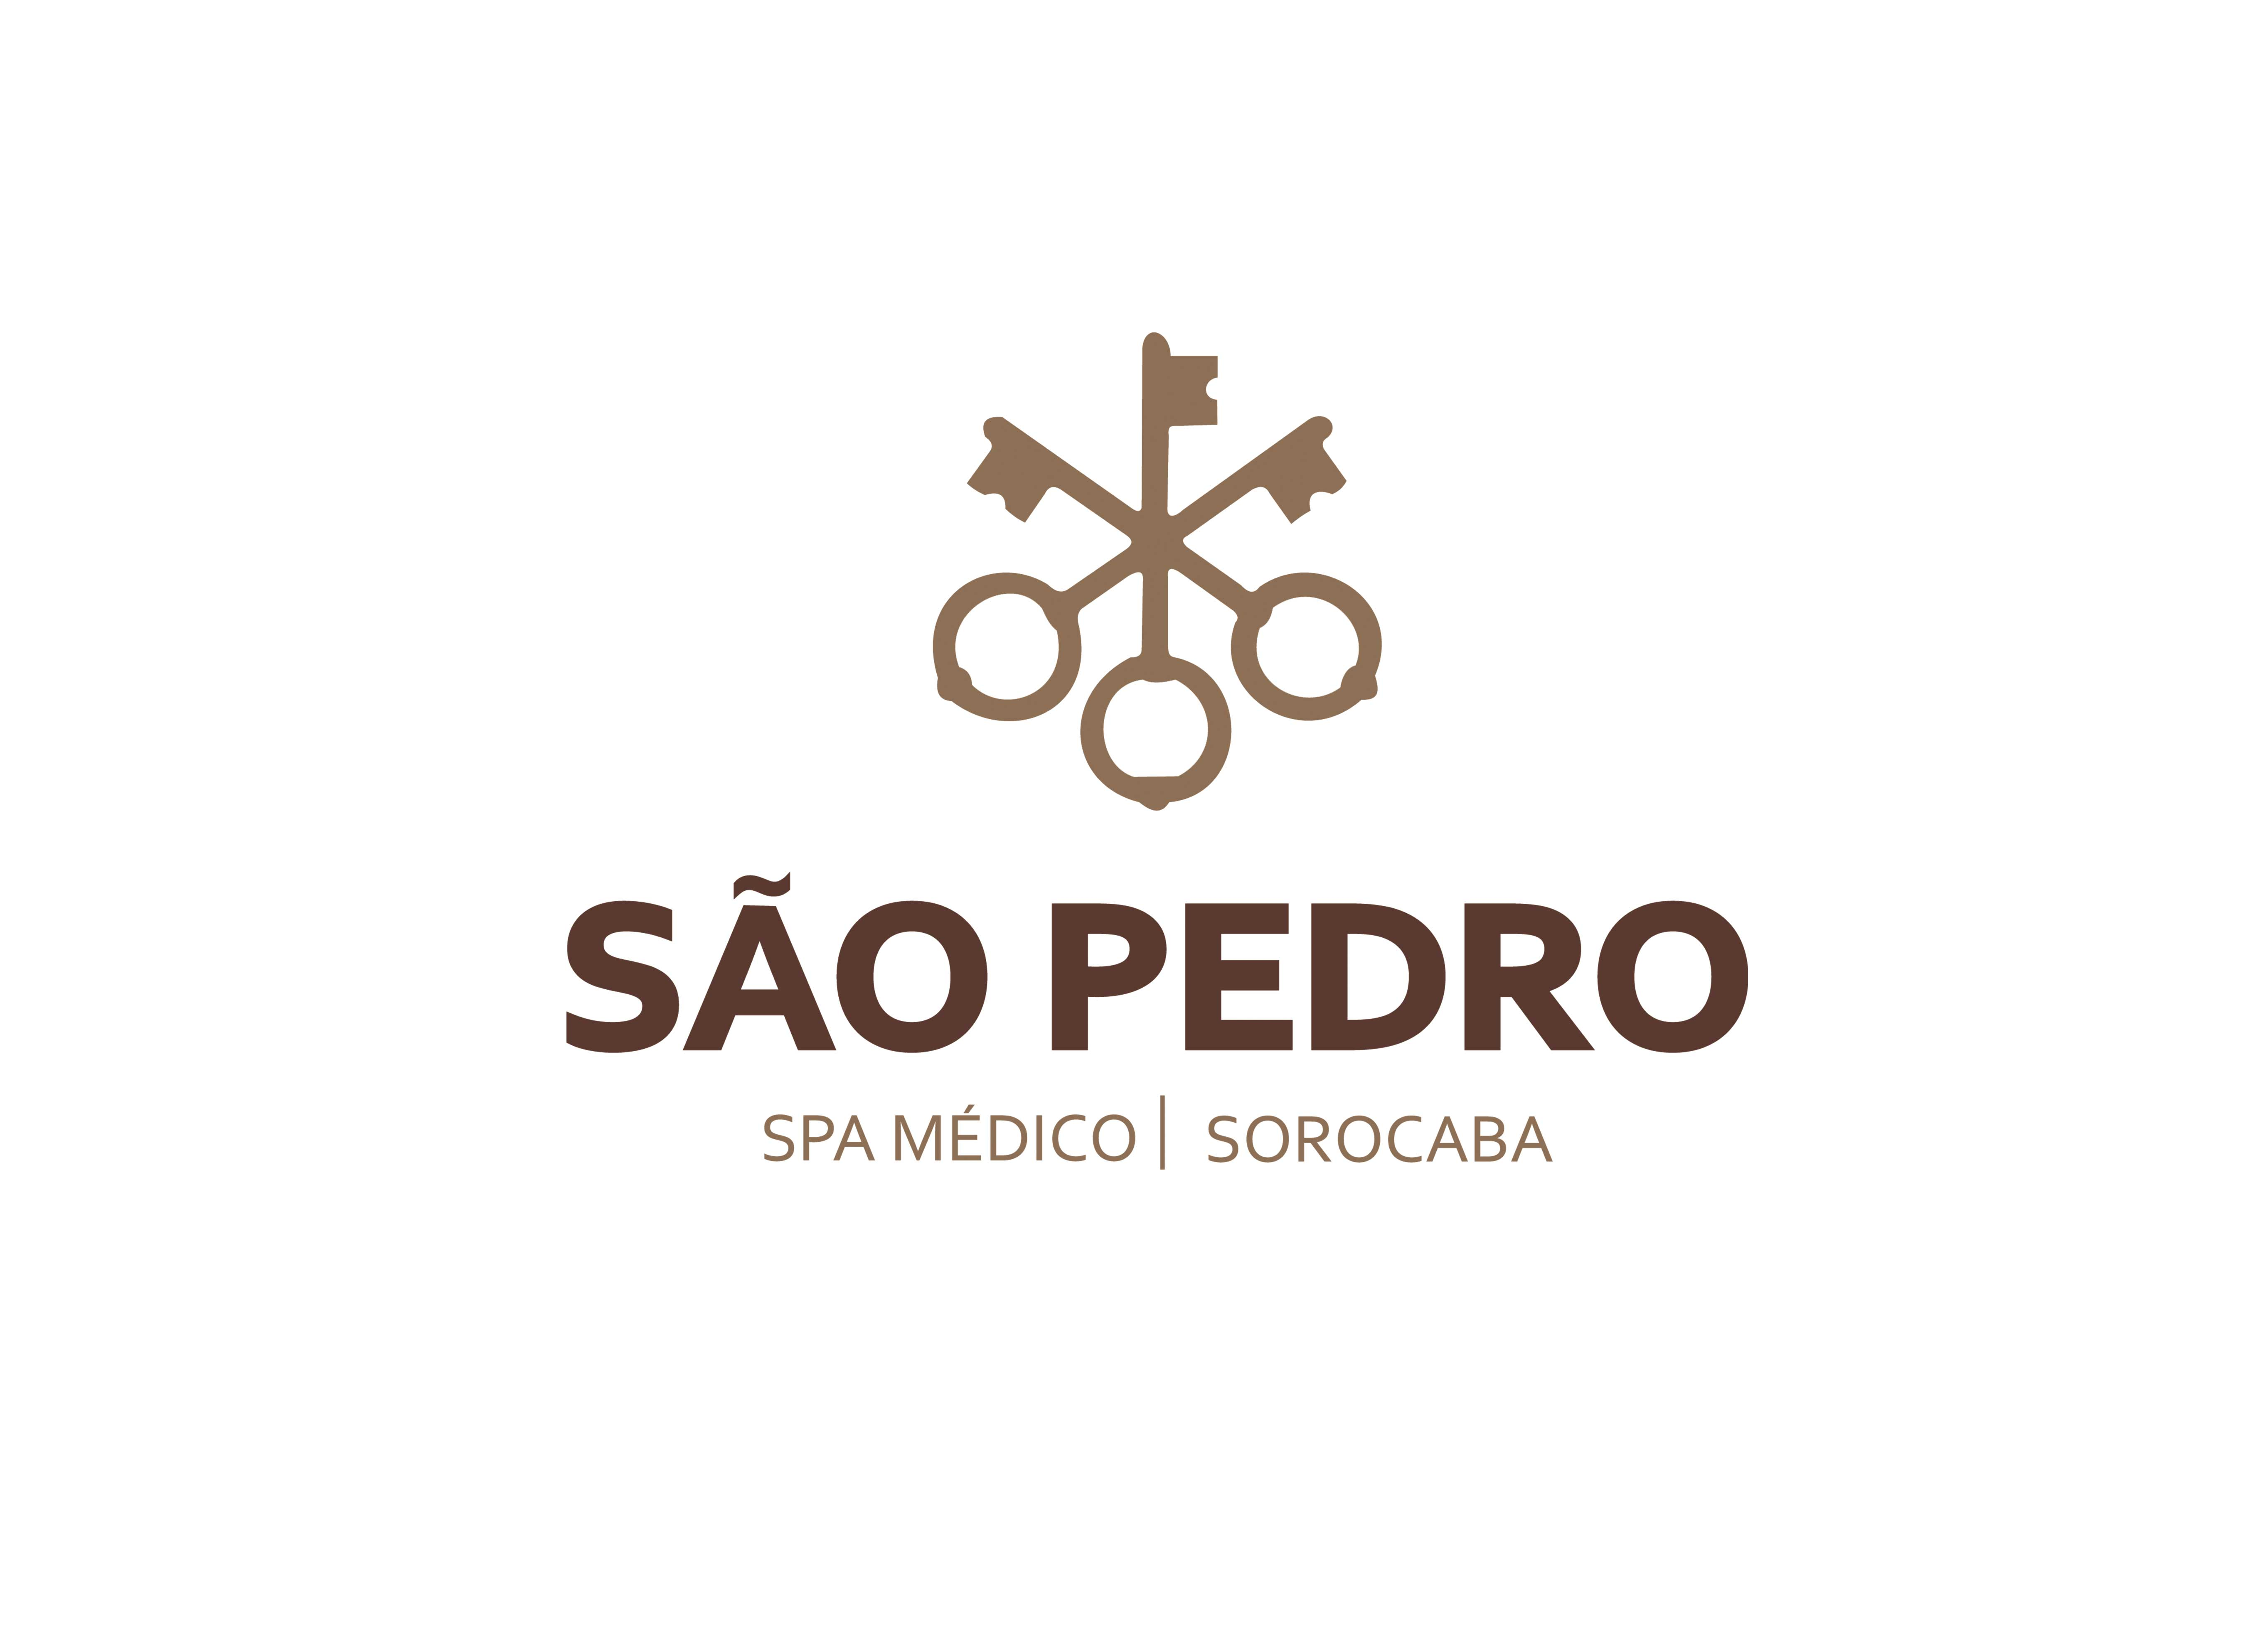 spa-sao-pedro-drc-marketingdigital